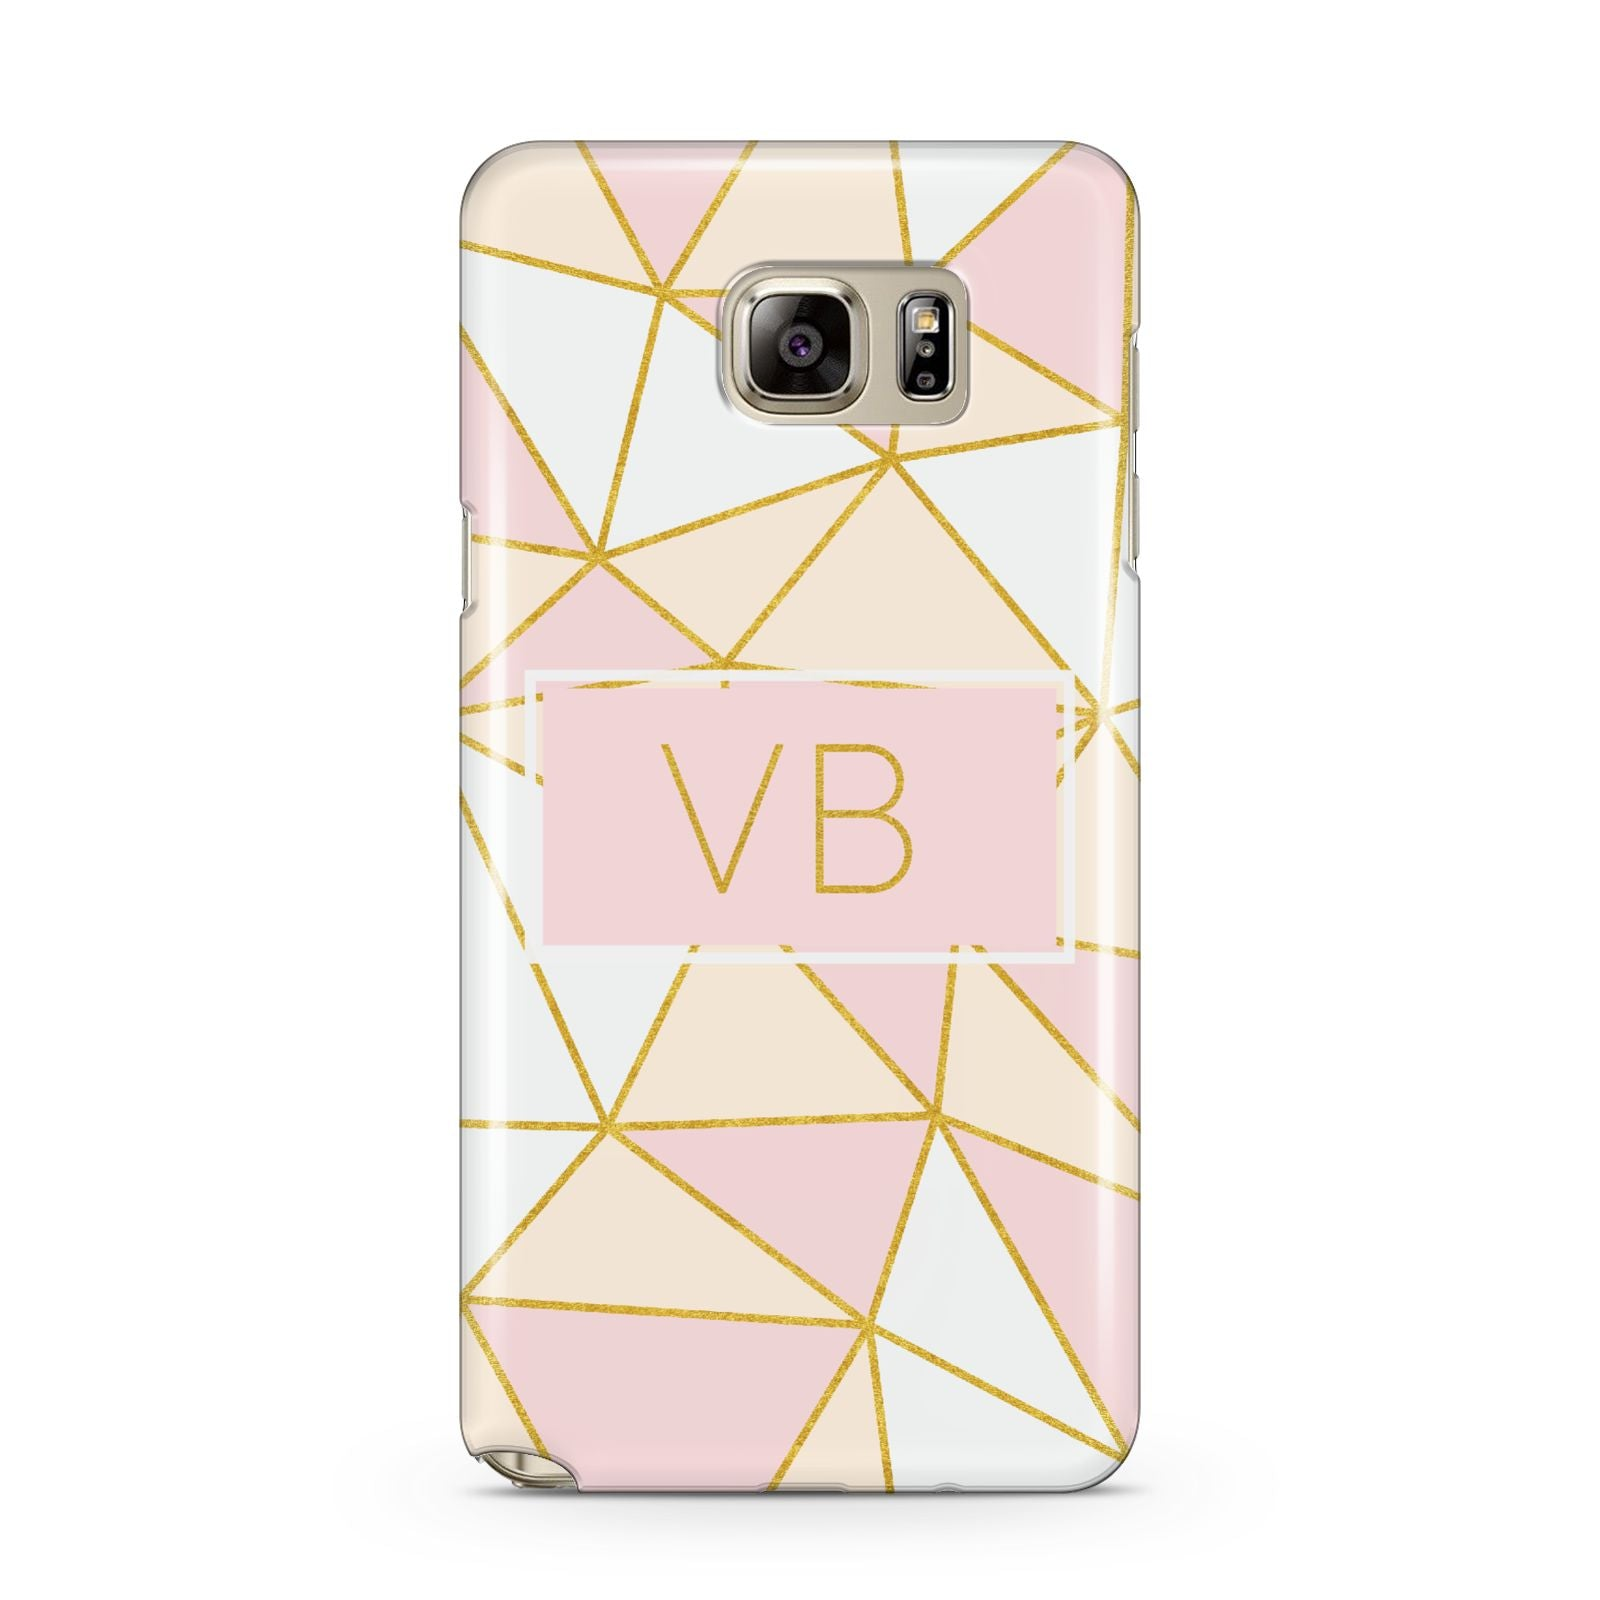 Personalised Gold Initials Geometric Samsung Galaxy Note 5 Case